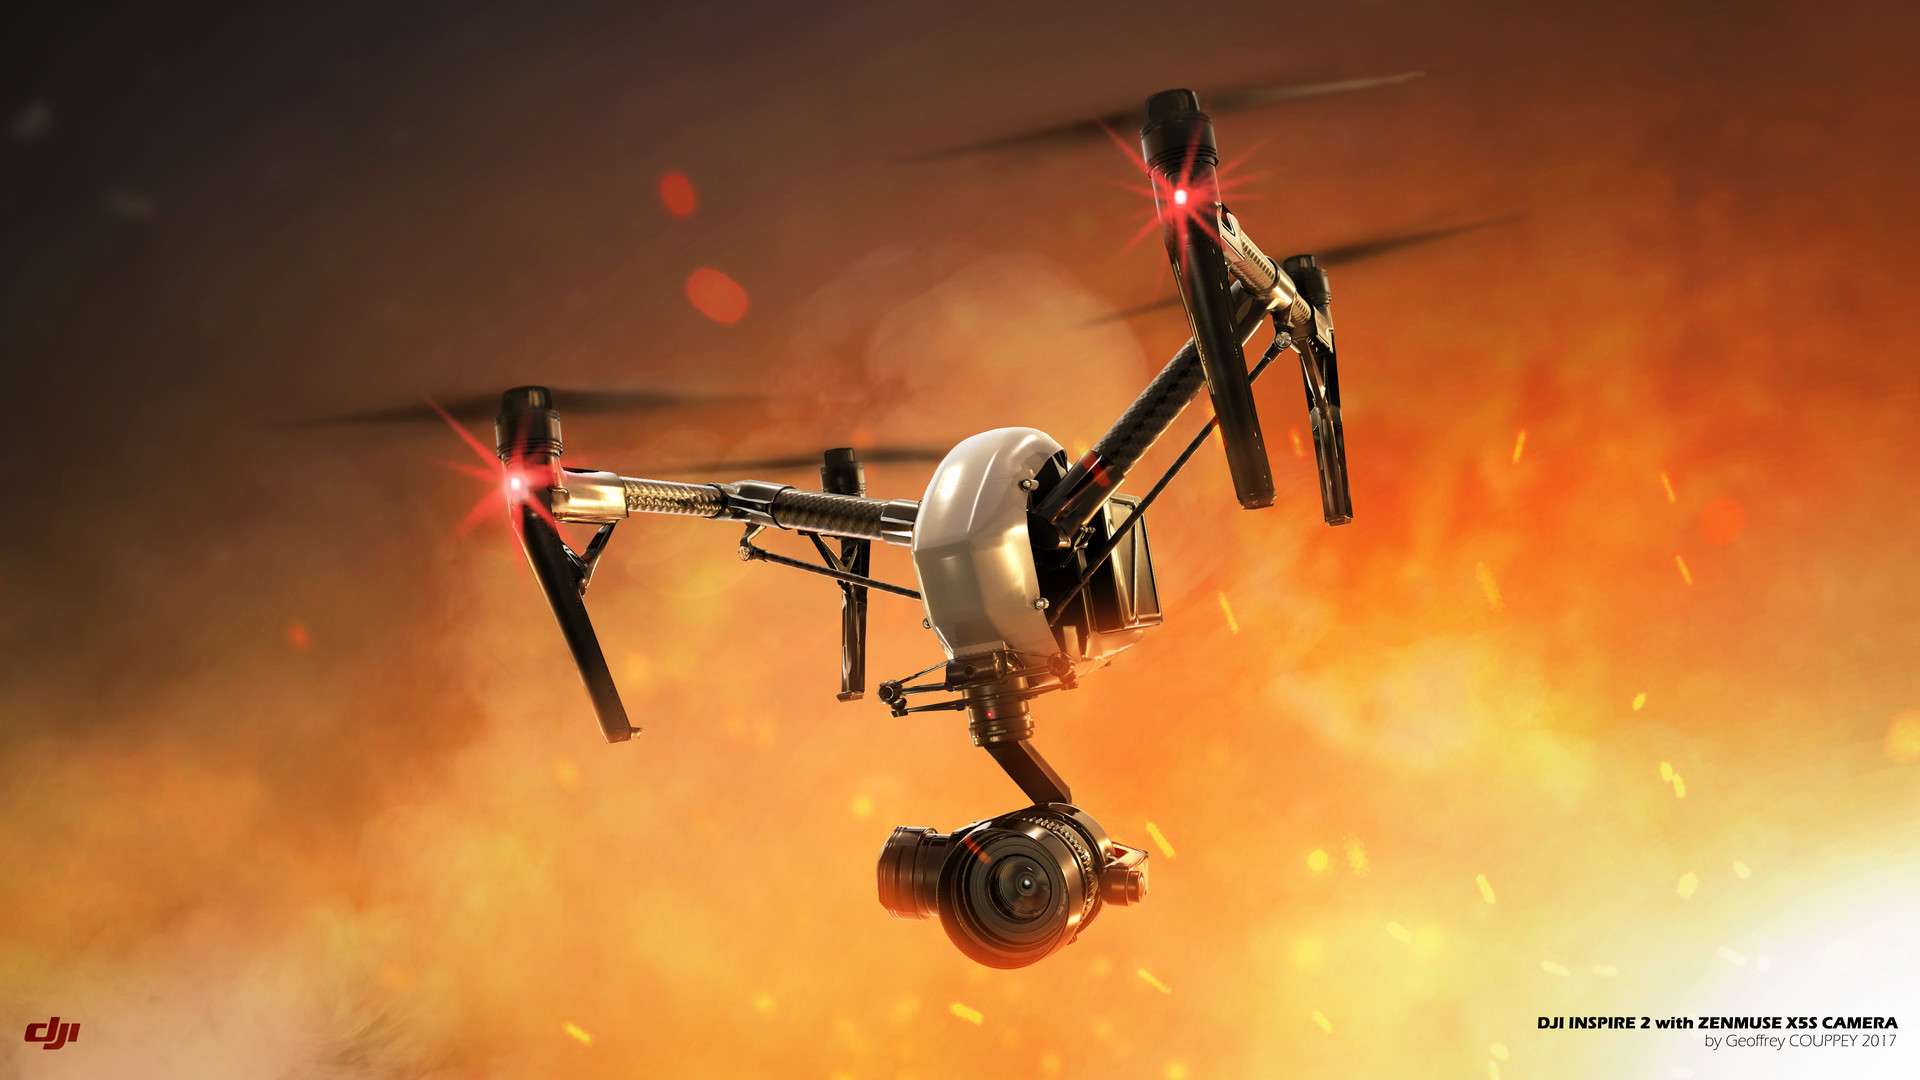 DJI INSPIRE 2 IN FIRE 3D Illustration